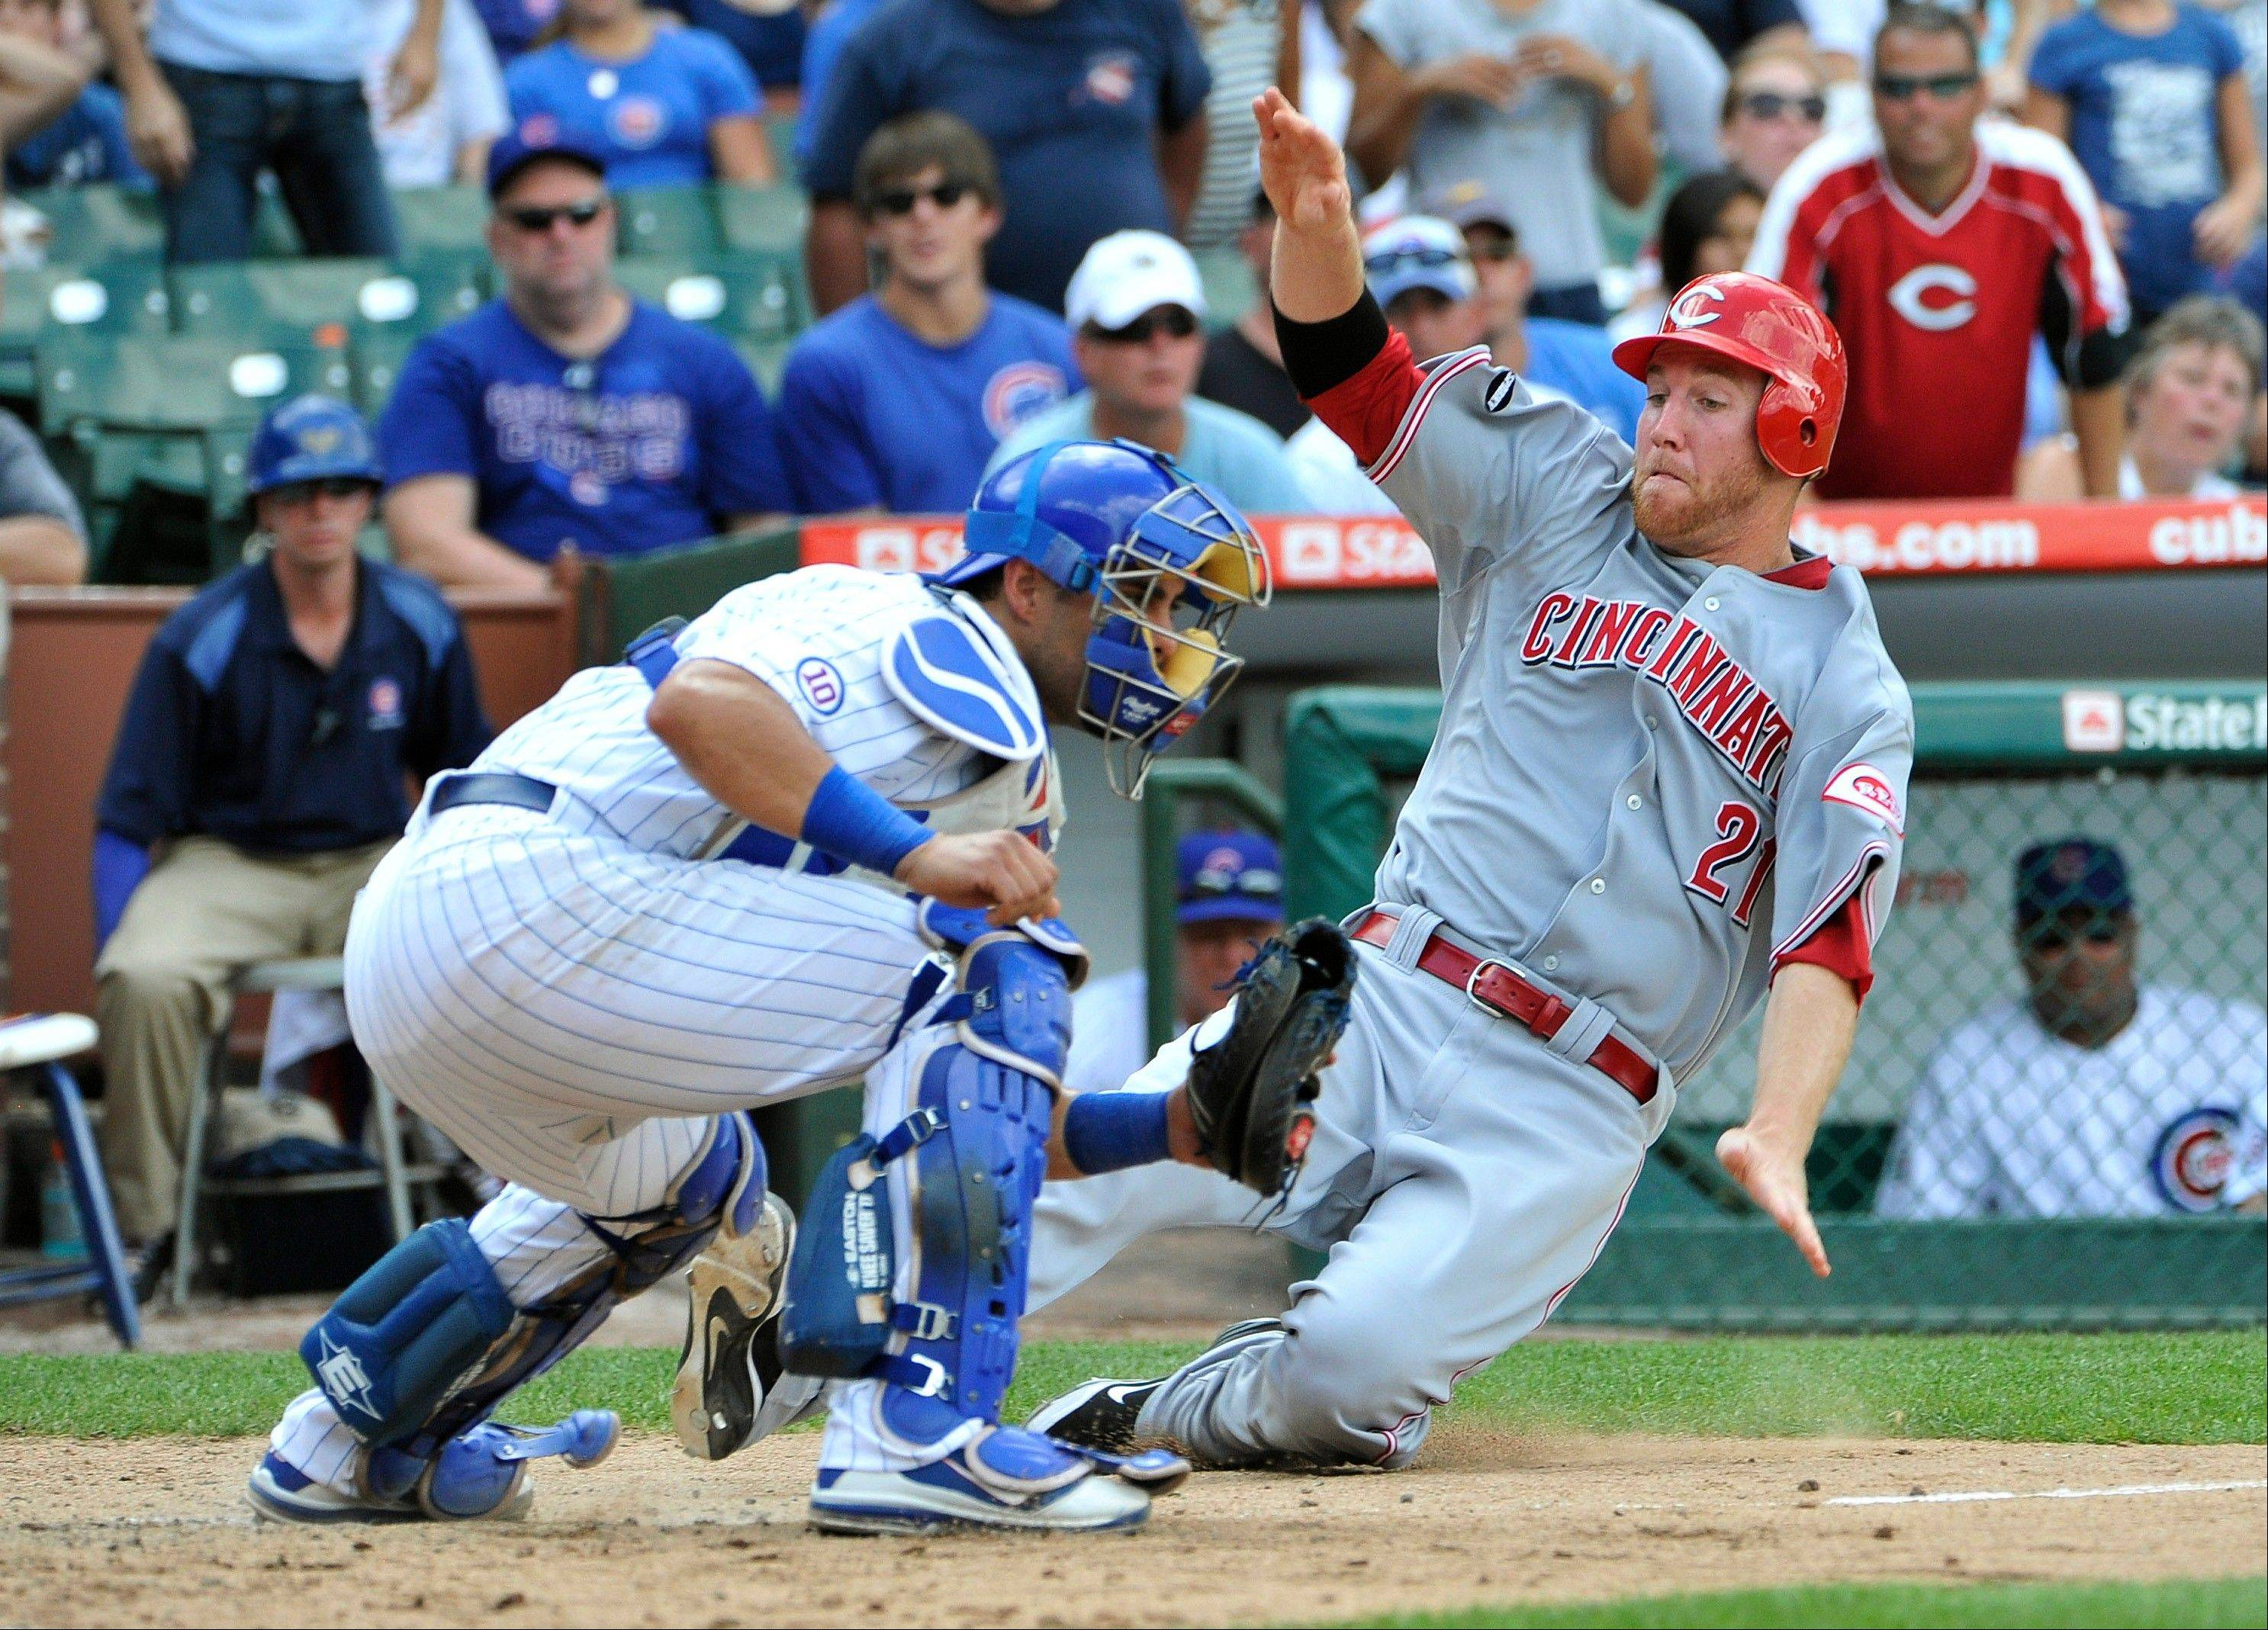 The Reds' Todd Frazier scores past Geovany Soto on a hit by Ryan Hanigan during the eighth inning Sunday in Chicago.